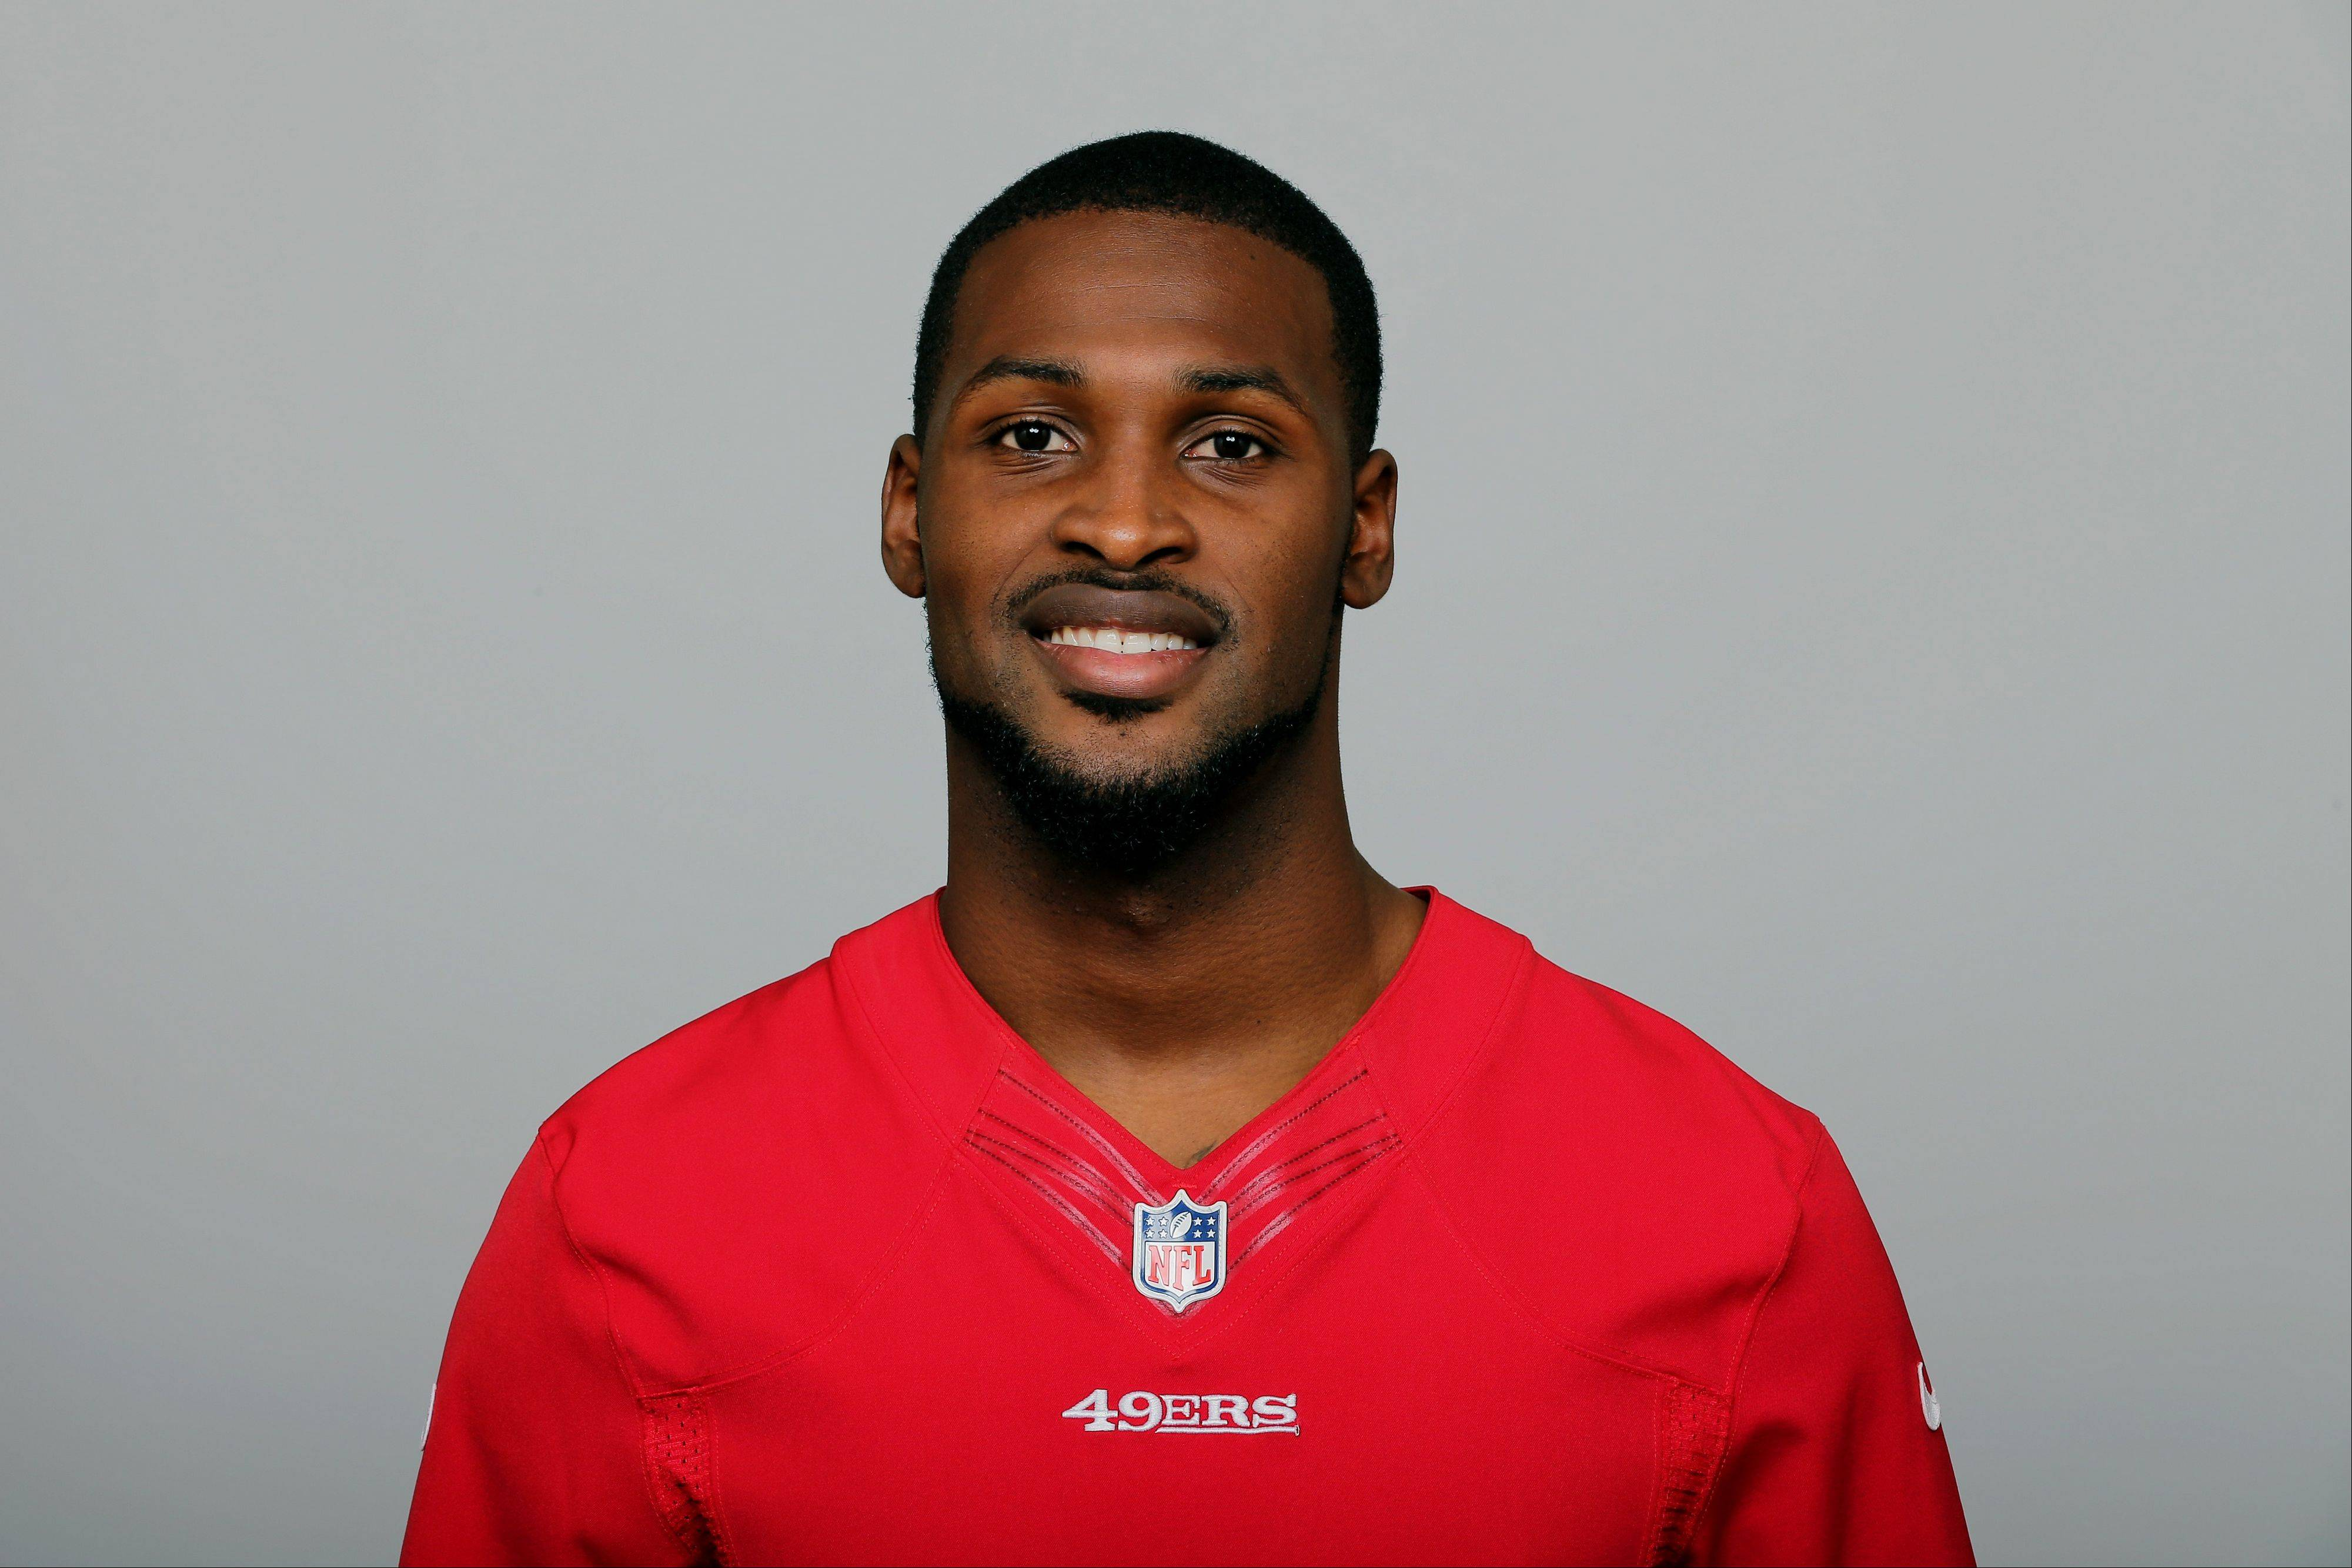 The 49ers sent A.J. Jenkins to the Chiefs for Jon Baldwin in a swap of wide receivers and disappointing first-round picks.